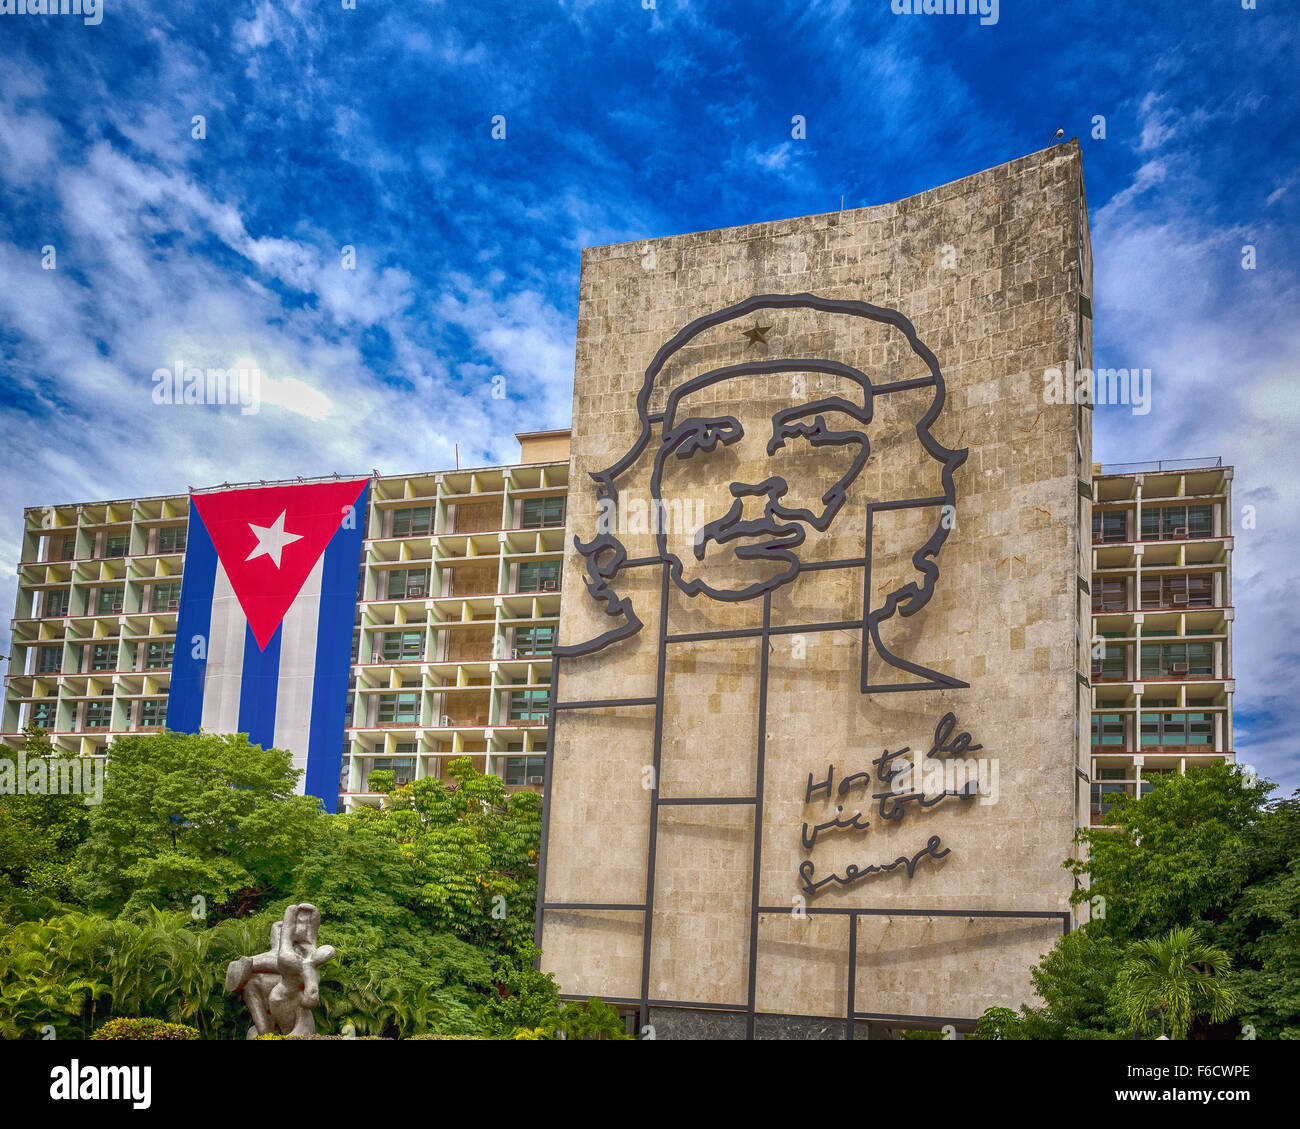 Ernesto Che Guevara as an art installation and propaganda work of art on a wall at the Revolution Square - Stock Image